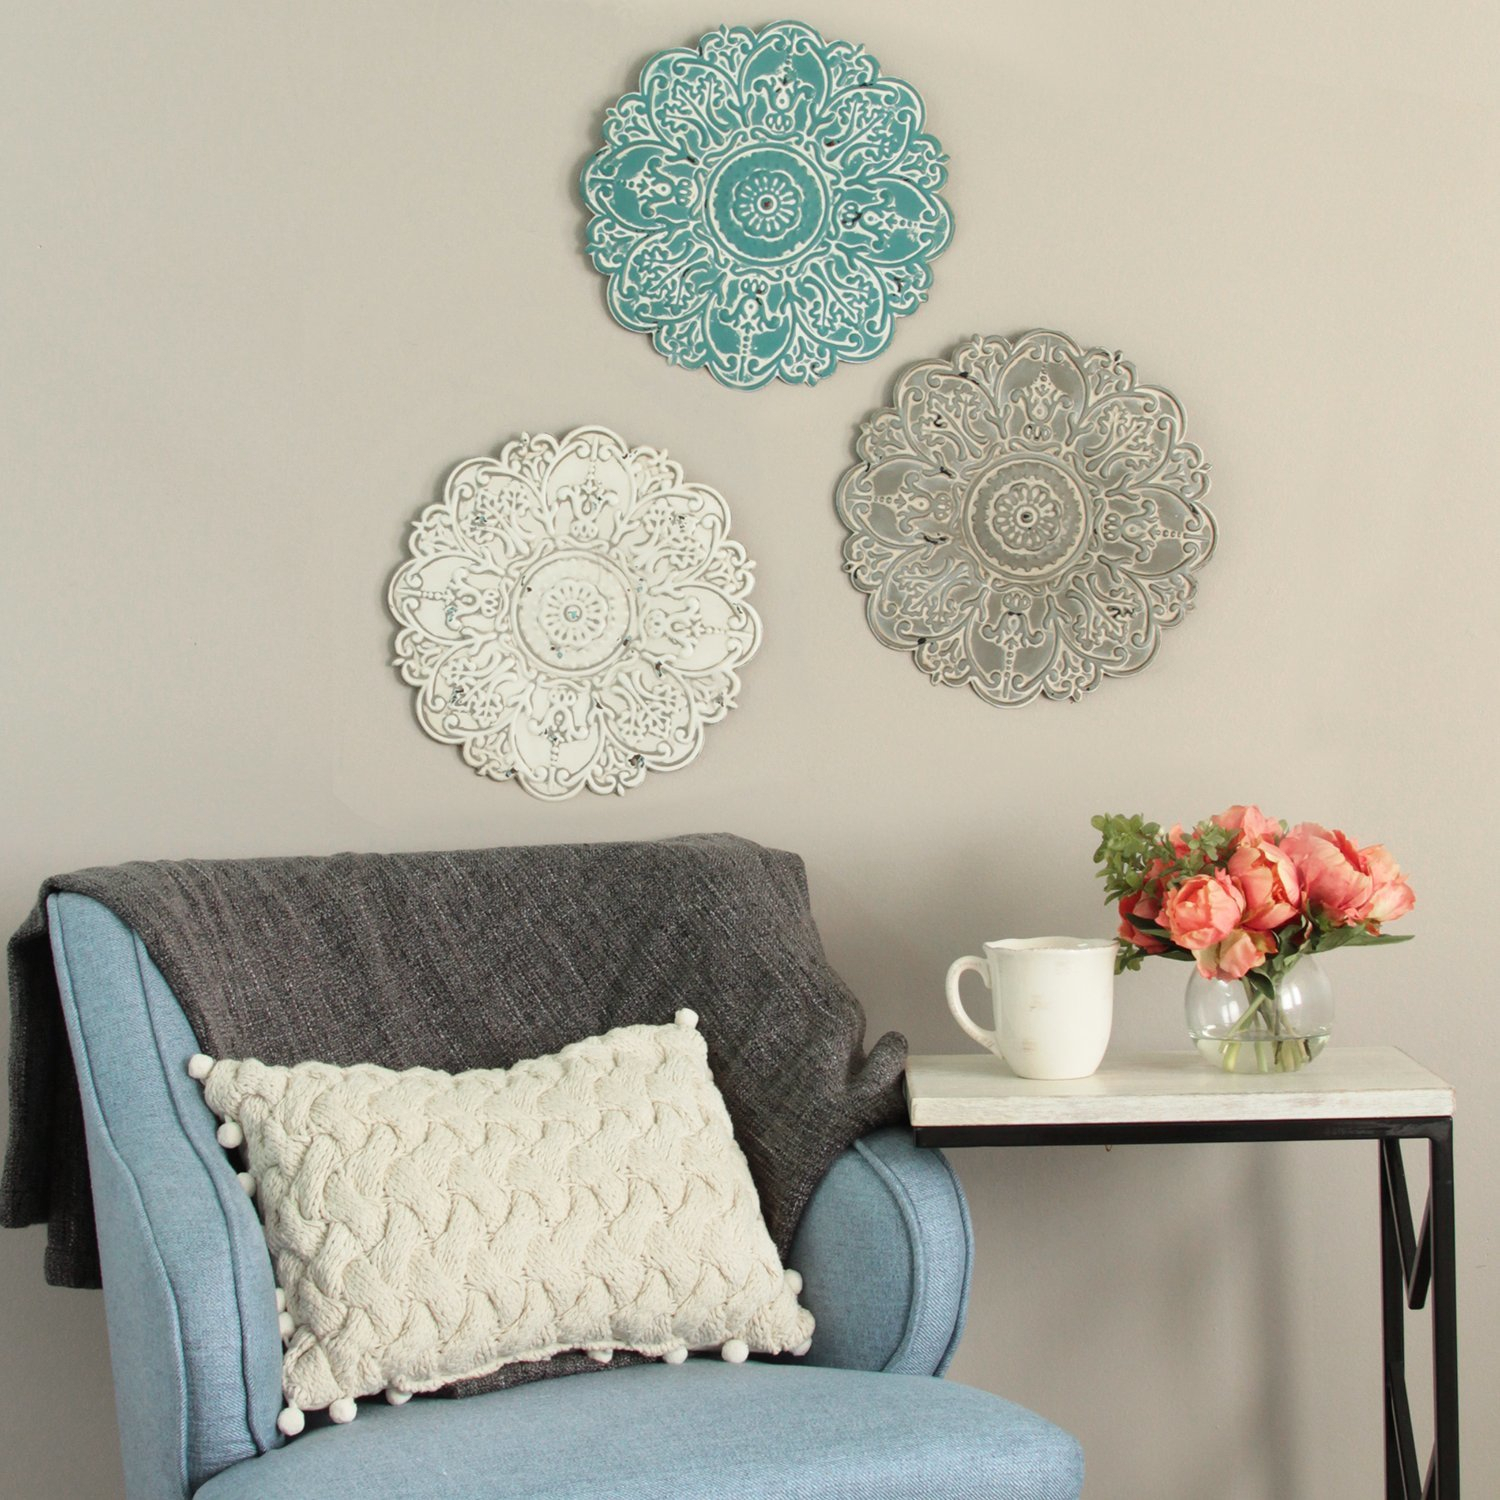 Wall Accents | Joss & Main In Three Glass Holder Wall Decor (View 19 of 30)